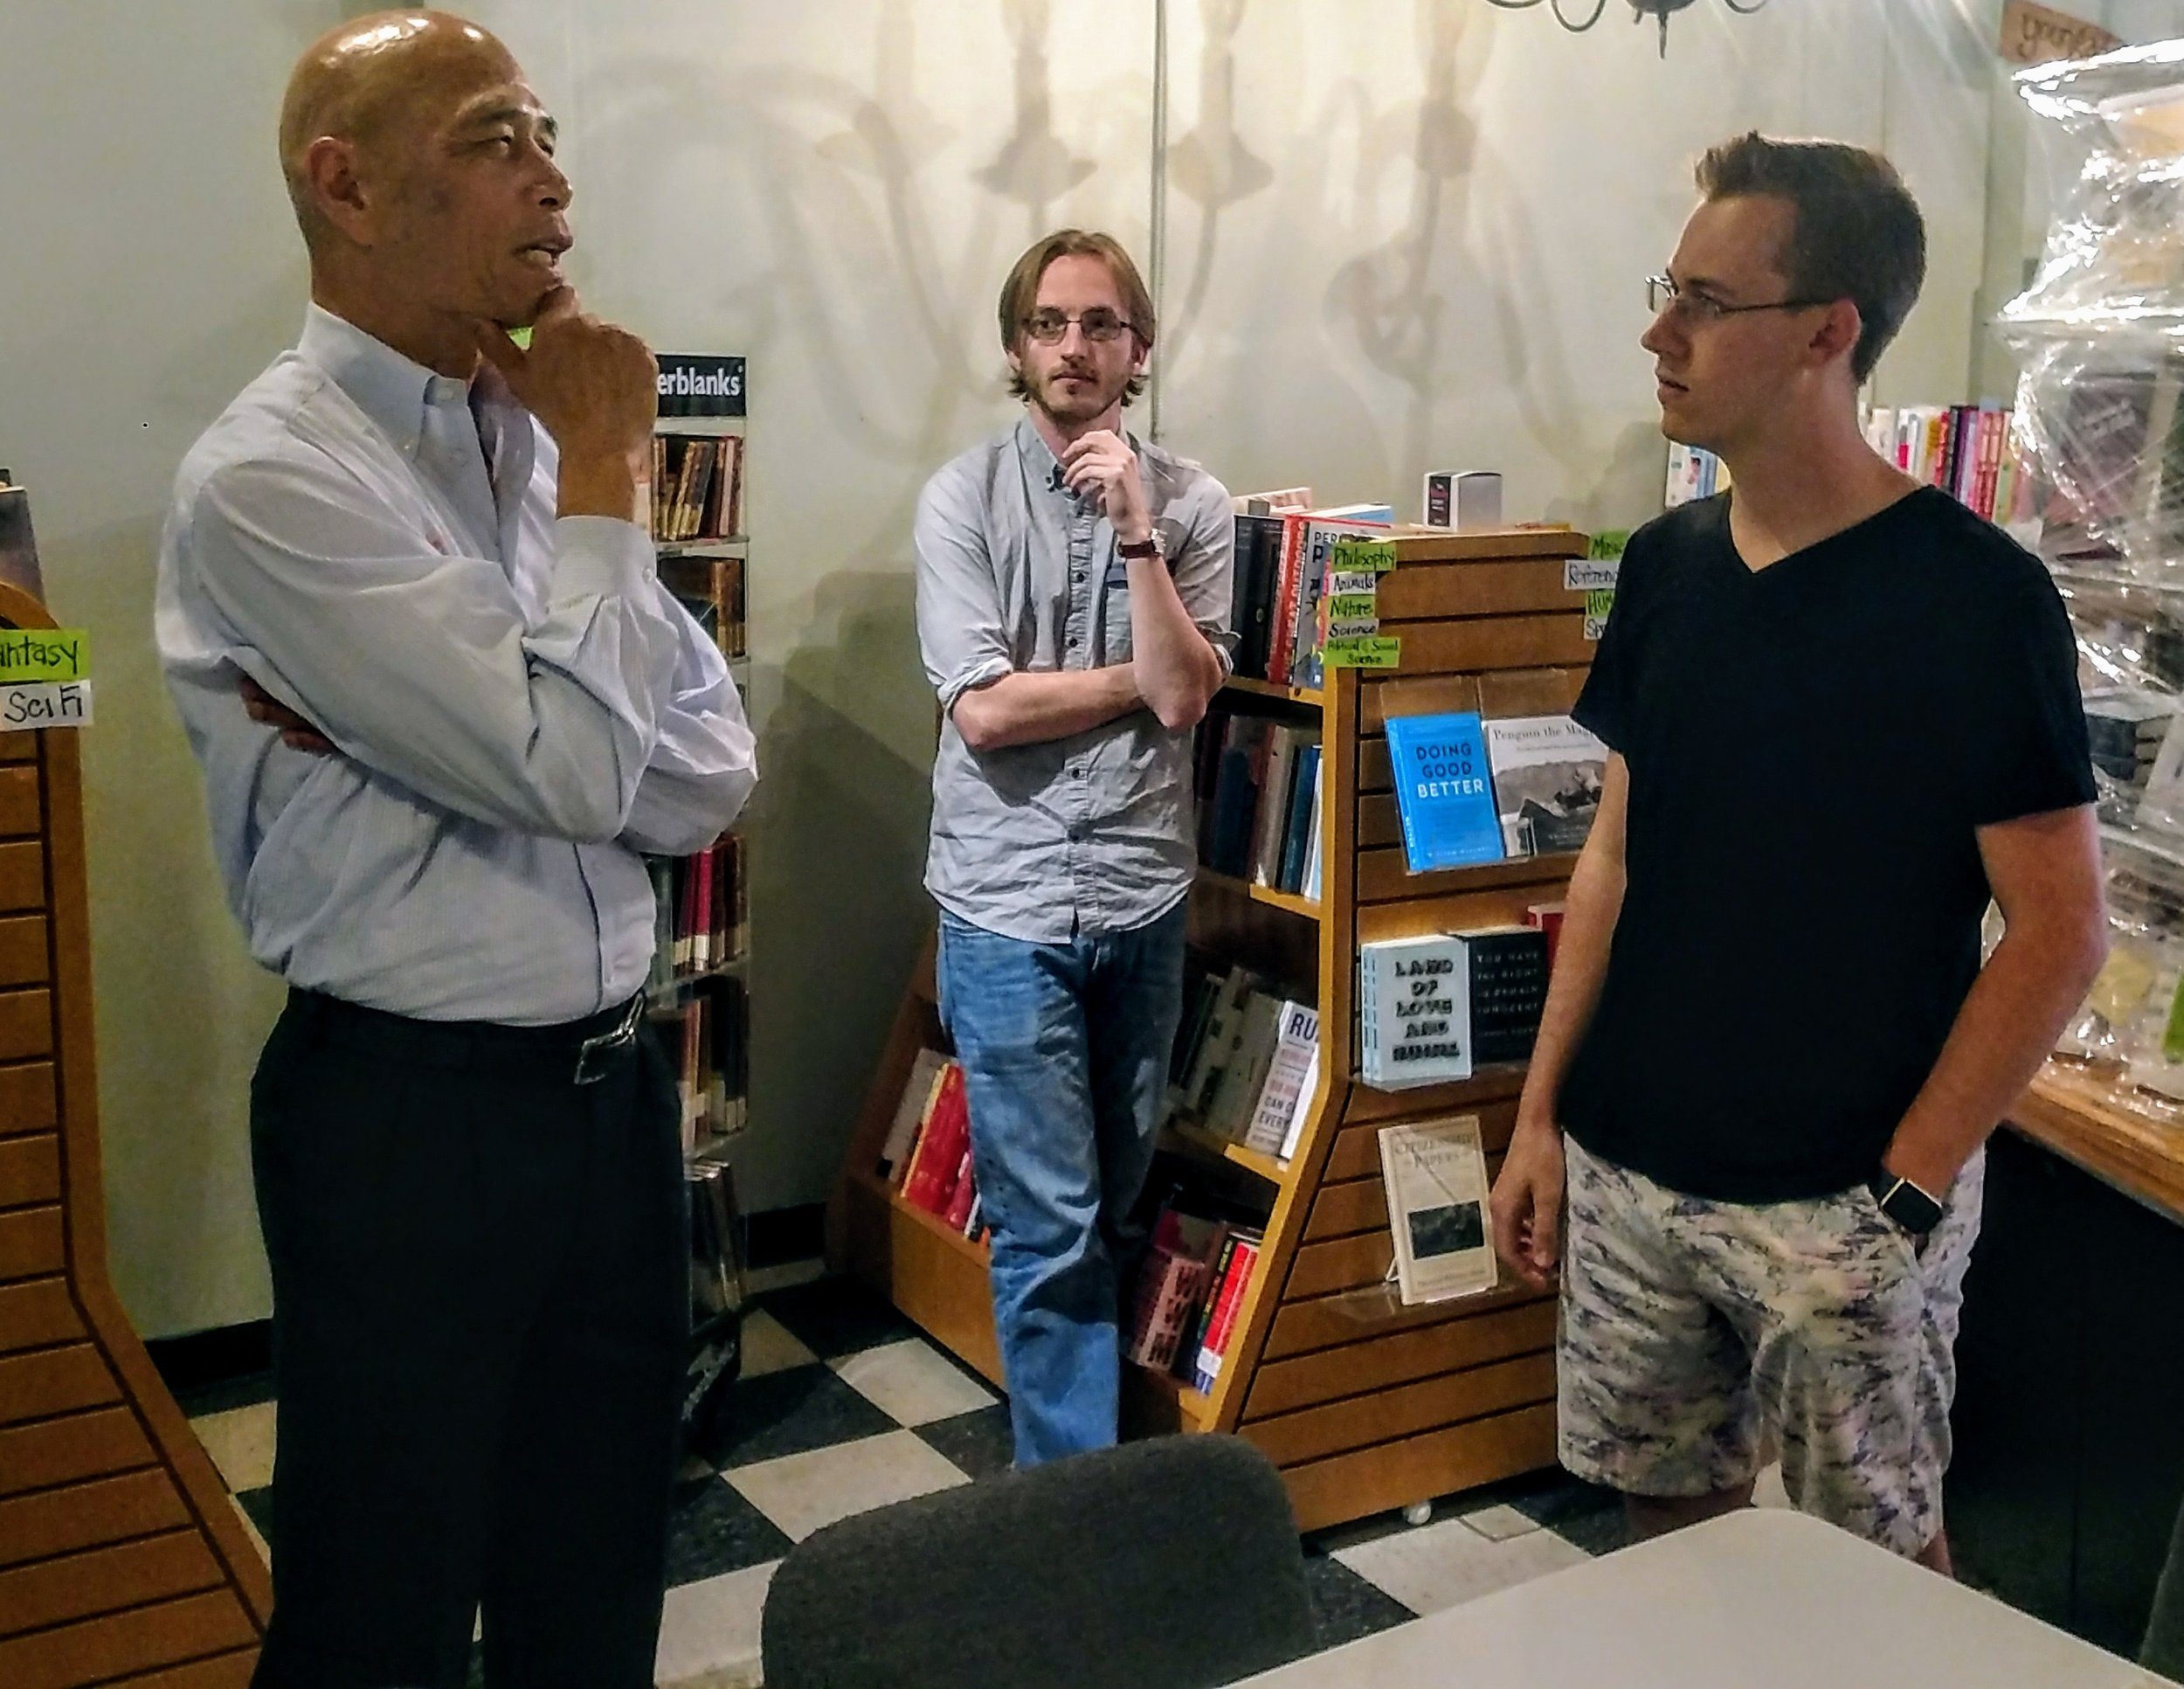 Kelvin conversing with college students in Wake Forest, North Carolina.